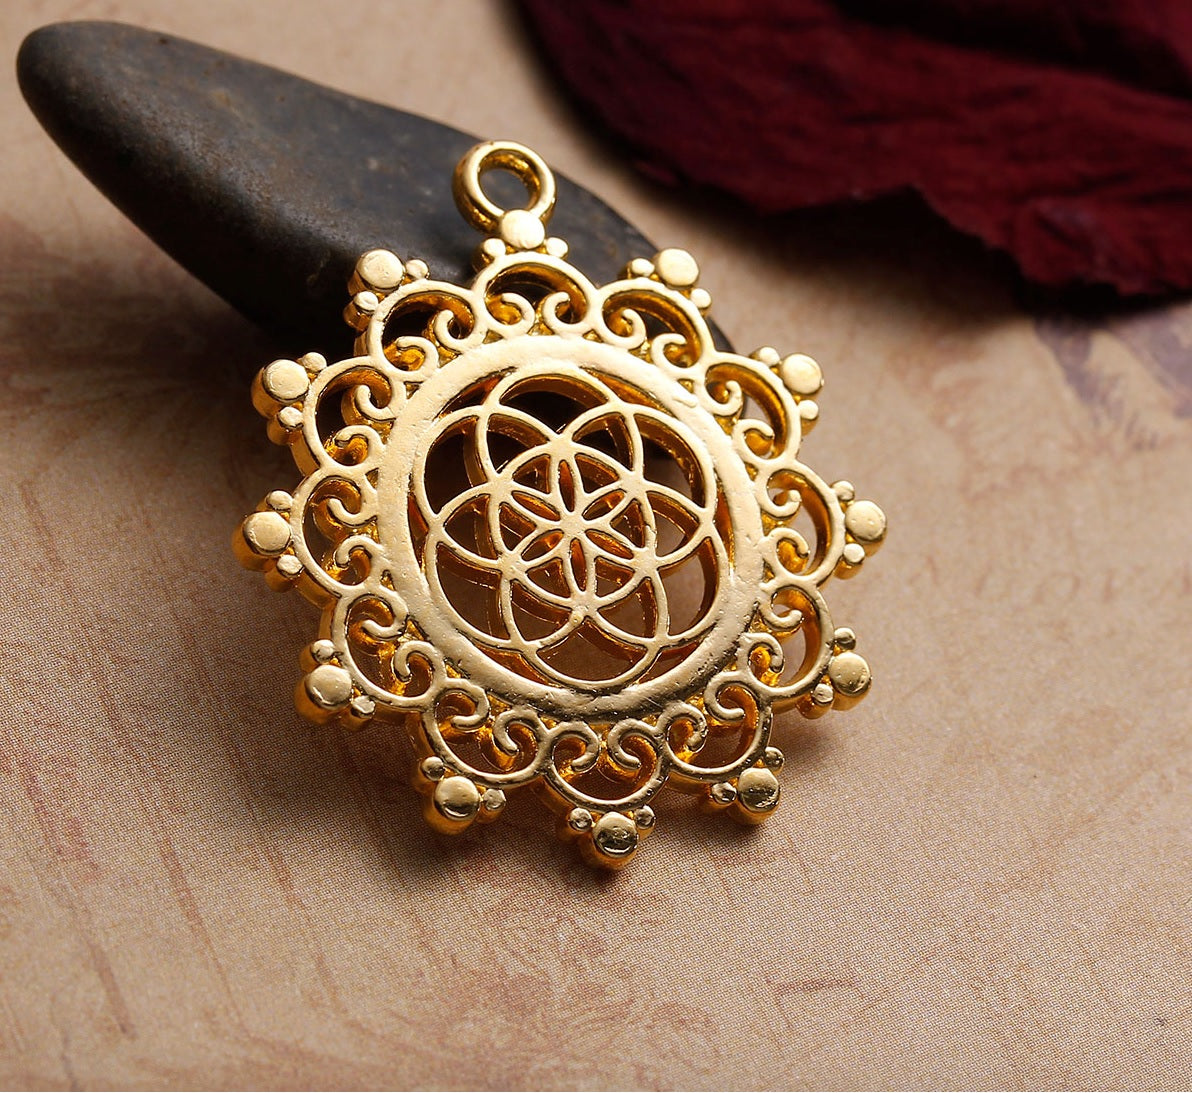 Lotus flower seed of life sacred geometry hindu gold colored pendant lotus flower seed of life sacred geometry hindu gold colored pendant aloadofball Gallery